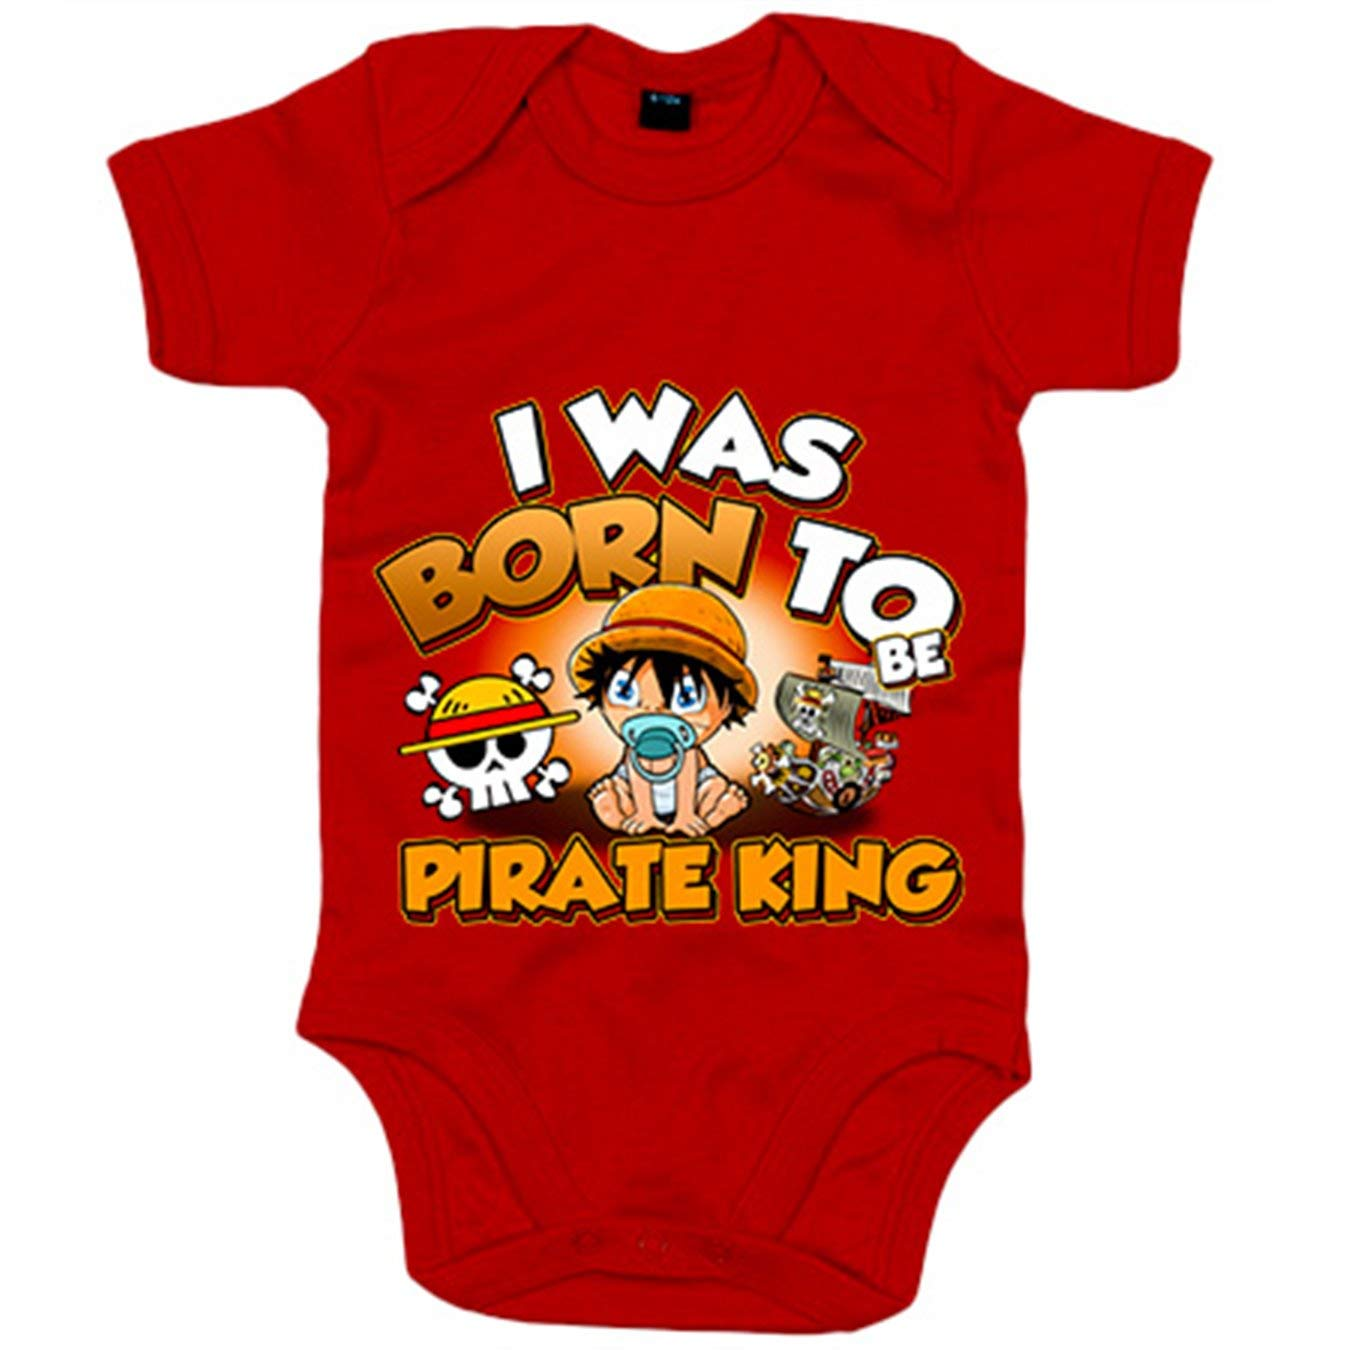 6-12 meses Amarillo Body beb/é I was born to be pirate Baby Monkey D Luffy king parodia One Piece